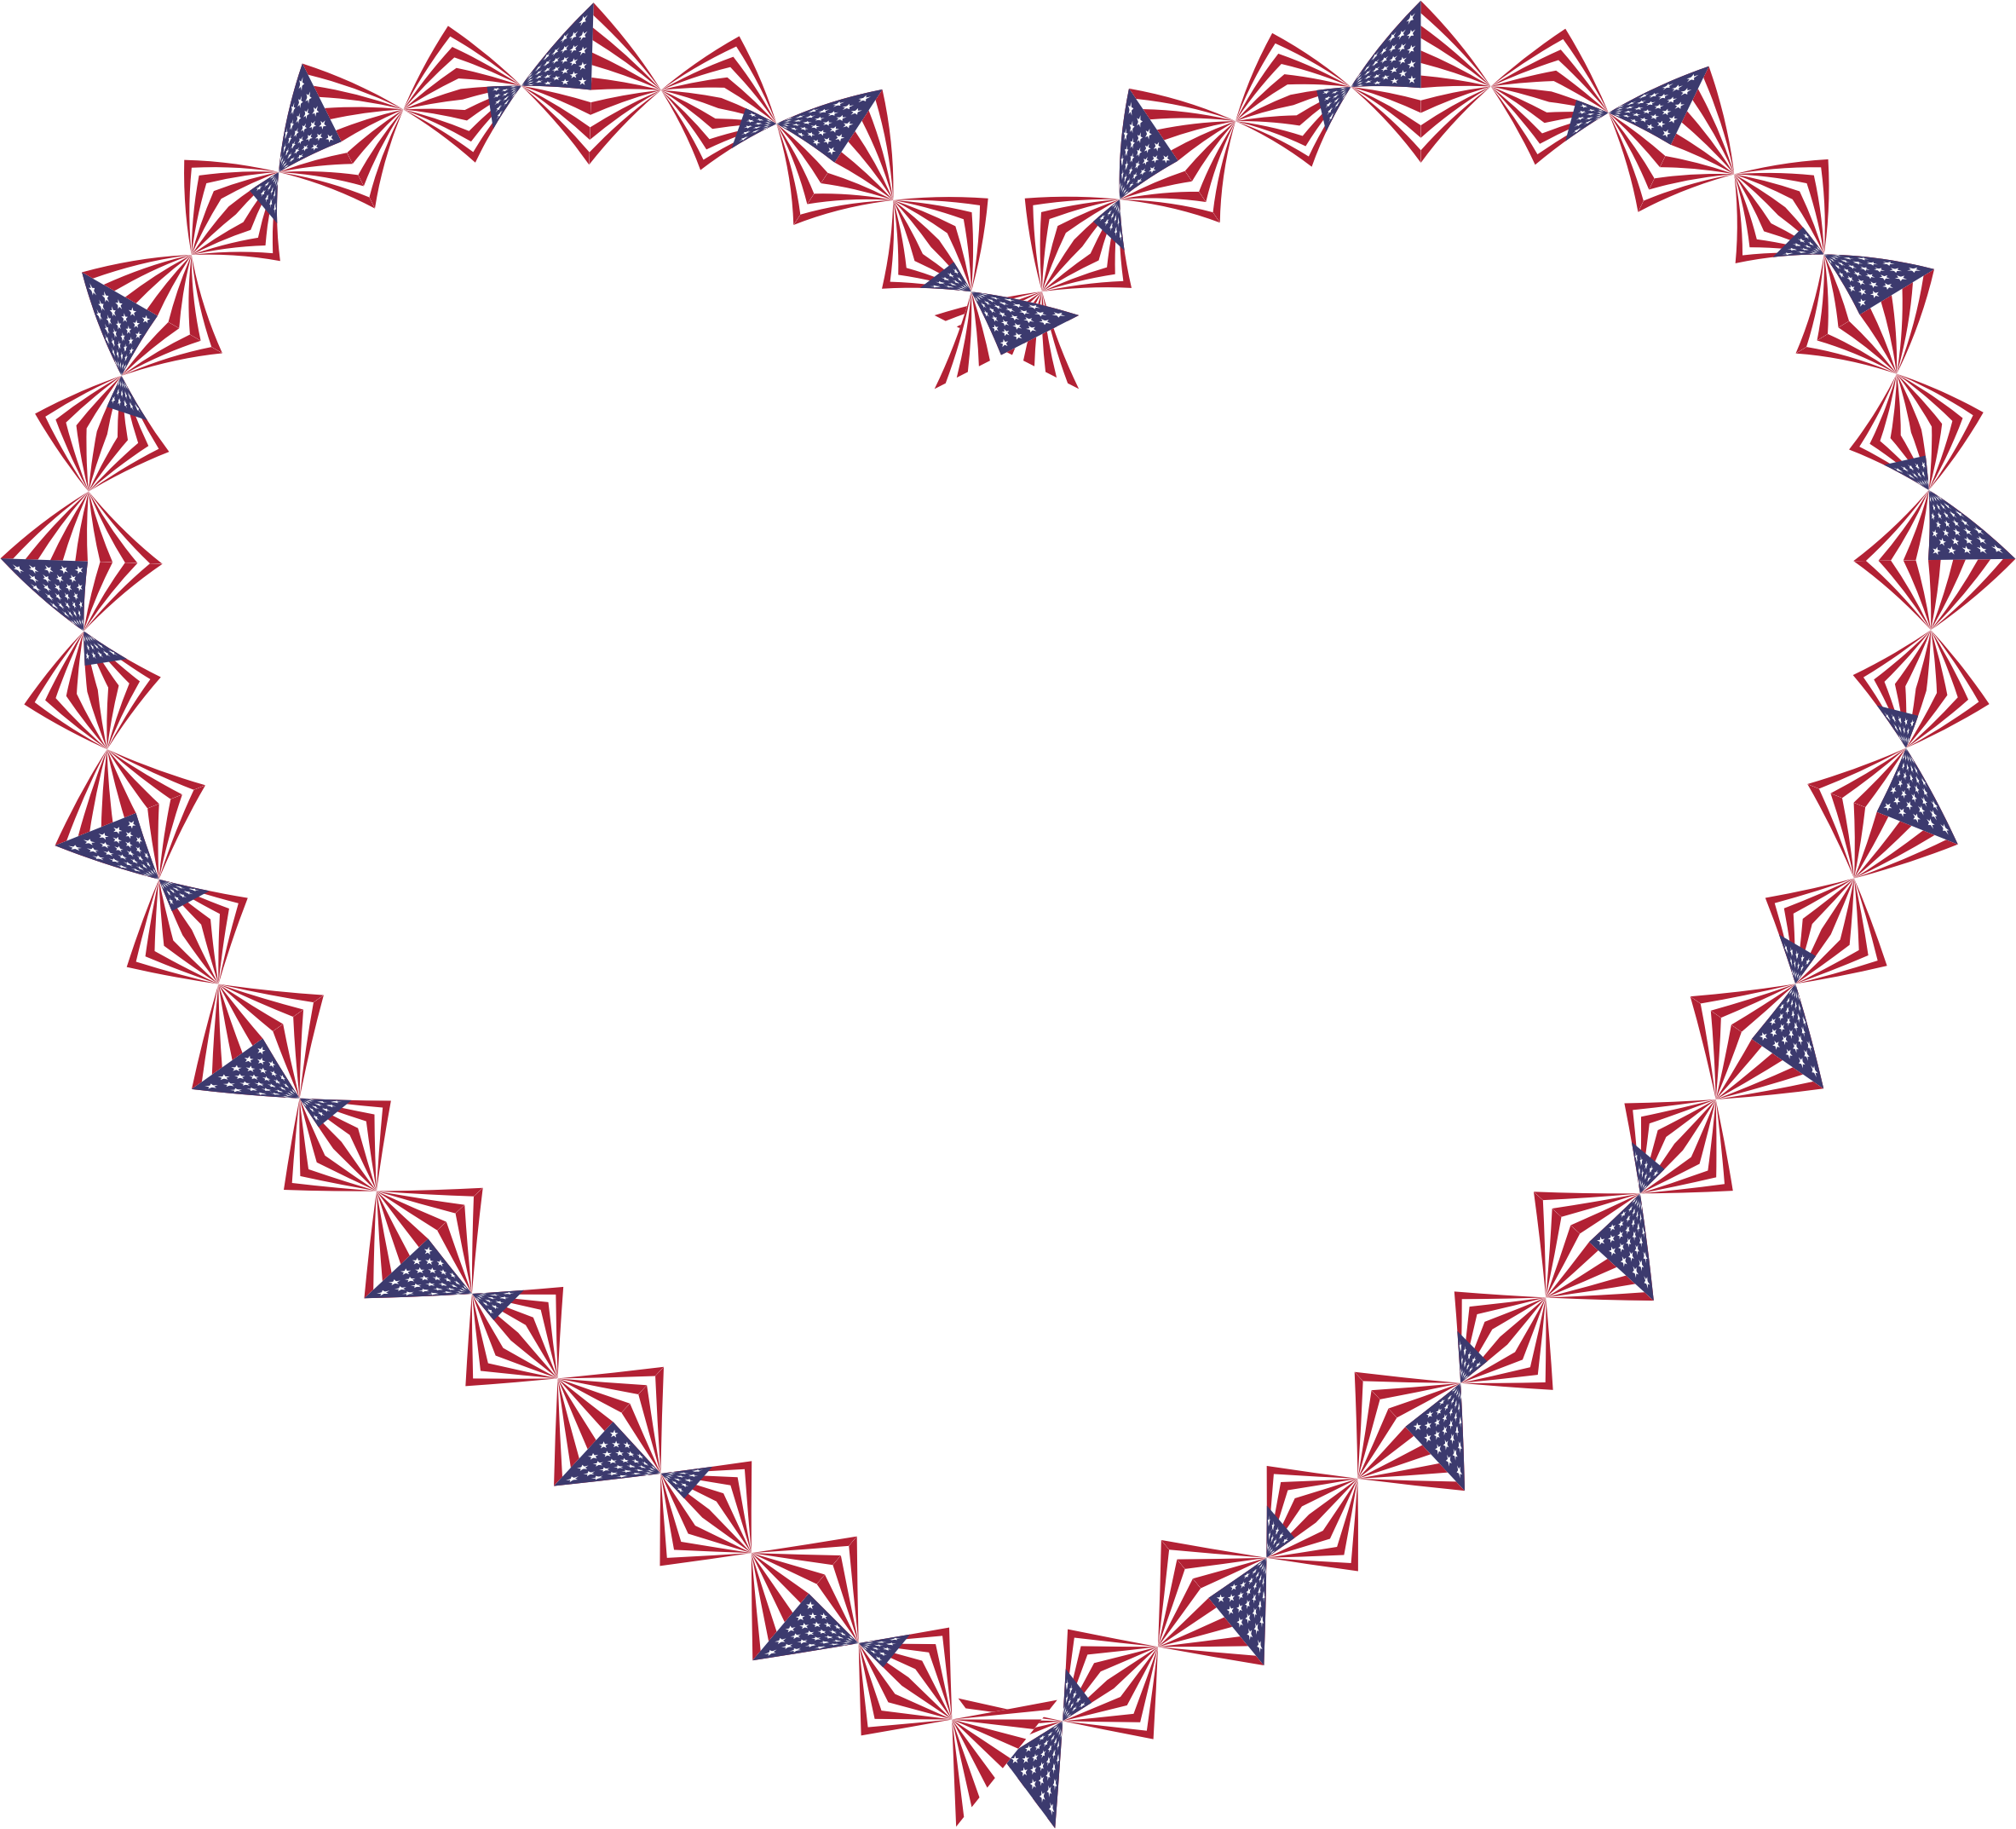 American flag heart clipart clip royalty free download Clipart - American Flag Twist Heart clip royalty free download